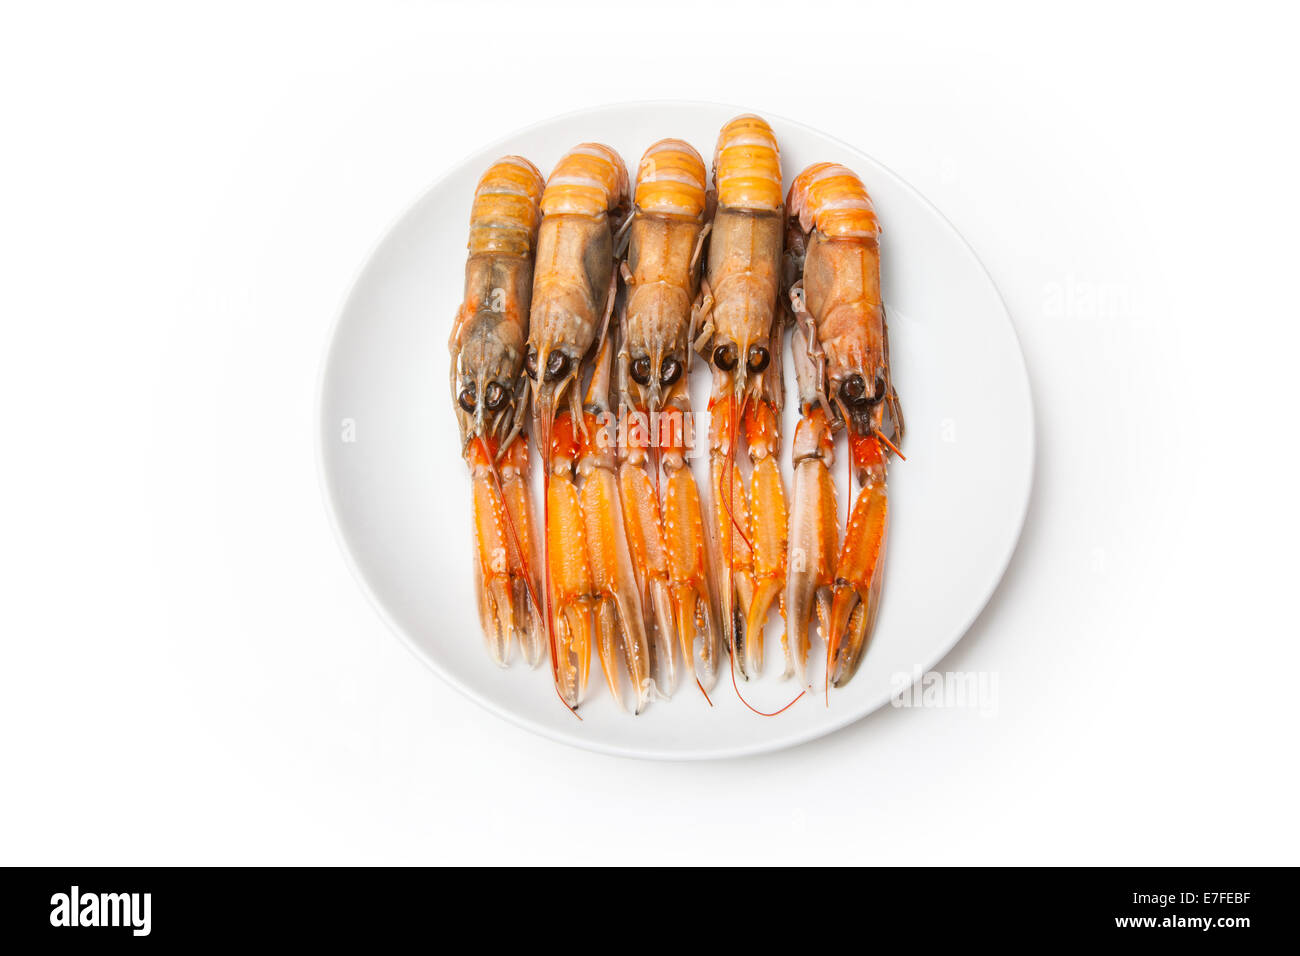 Langoustine  (Nephrops norvegicus),Dublin Bay Prawn or Norway Lobster ioslated on a white studio background. - Stock Image